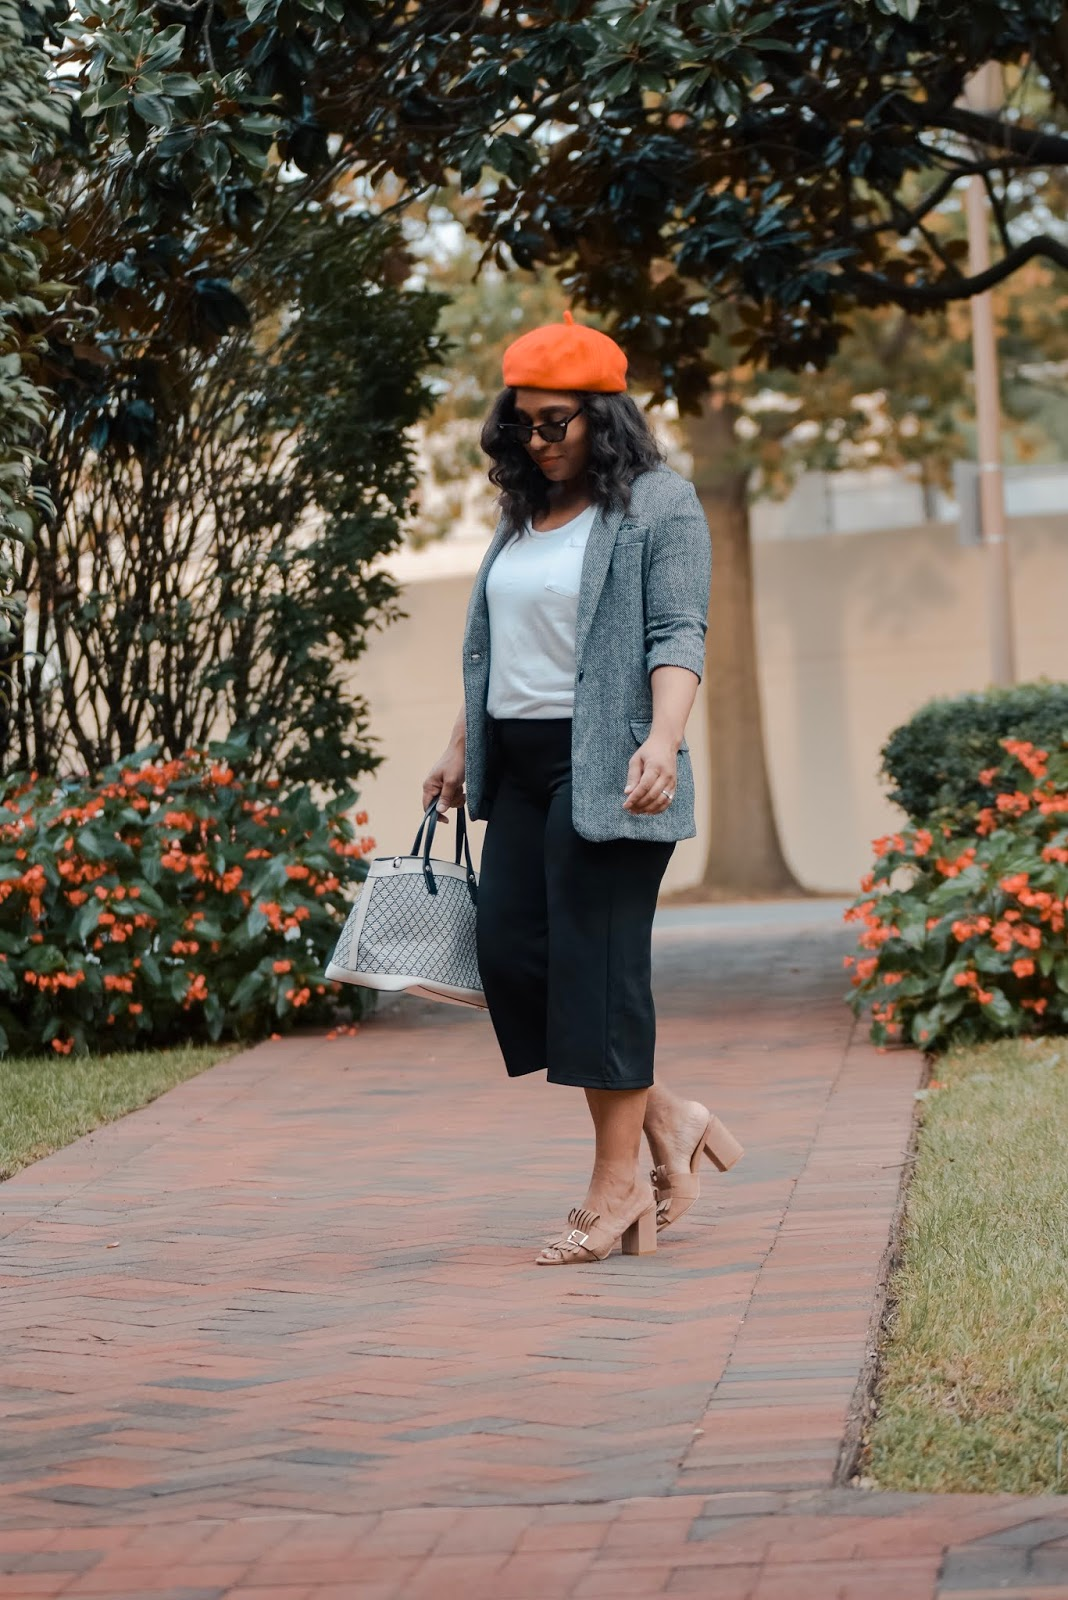 Blazers for fall, trends hats for fall, blazers, mom bloggers, postpartum, fashion bloggers, simple outfit ideas, fall outfits